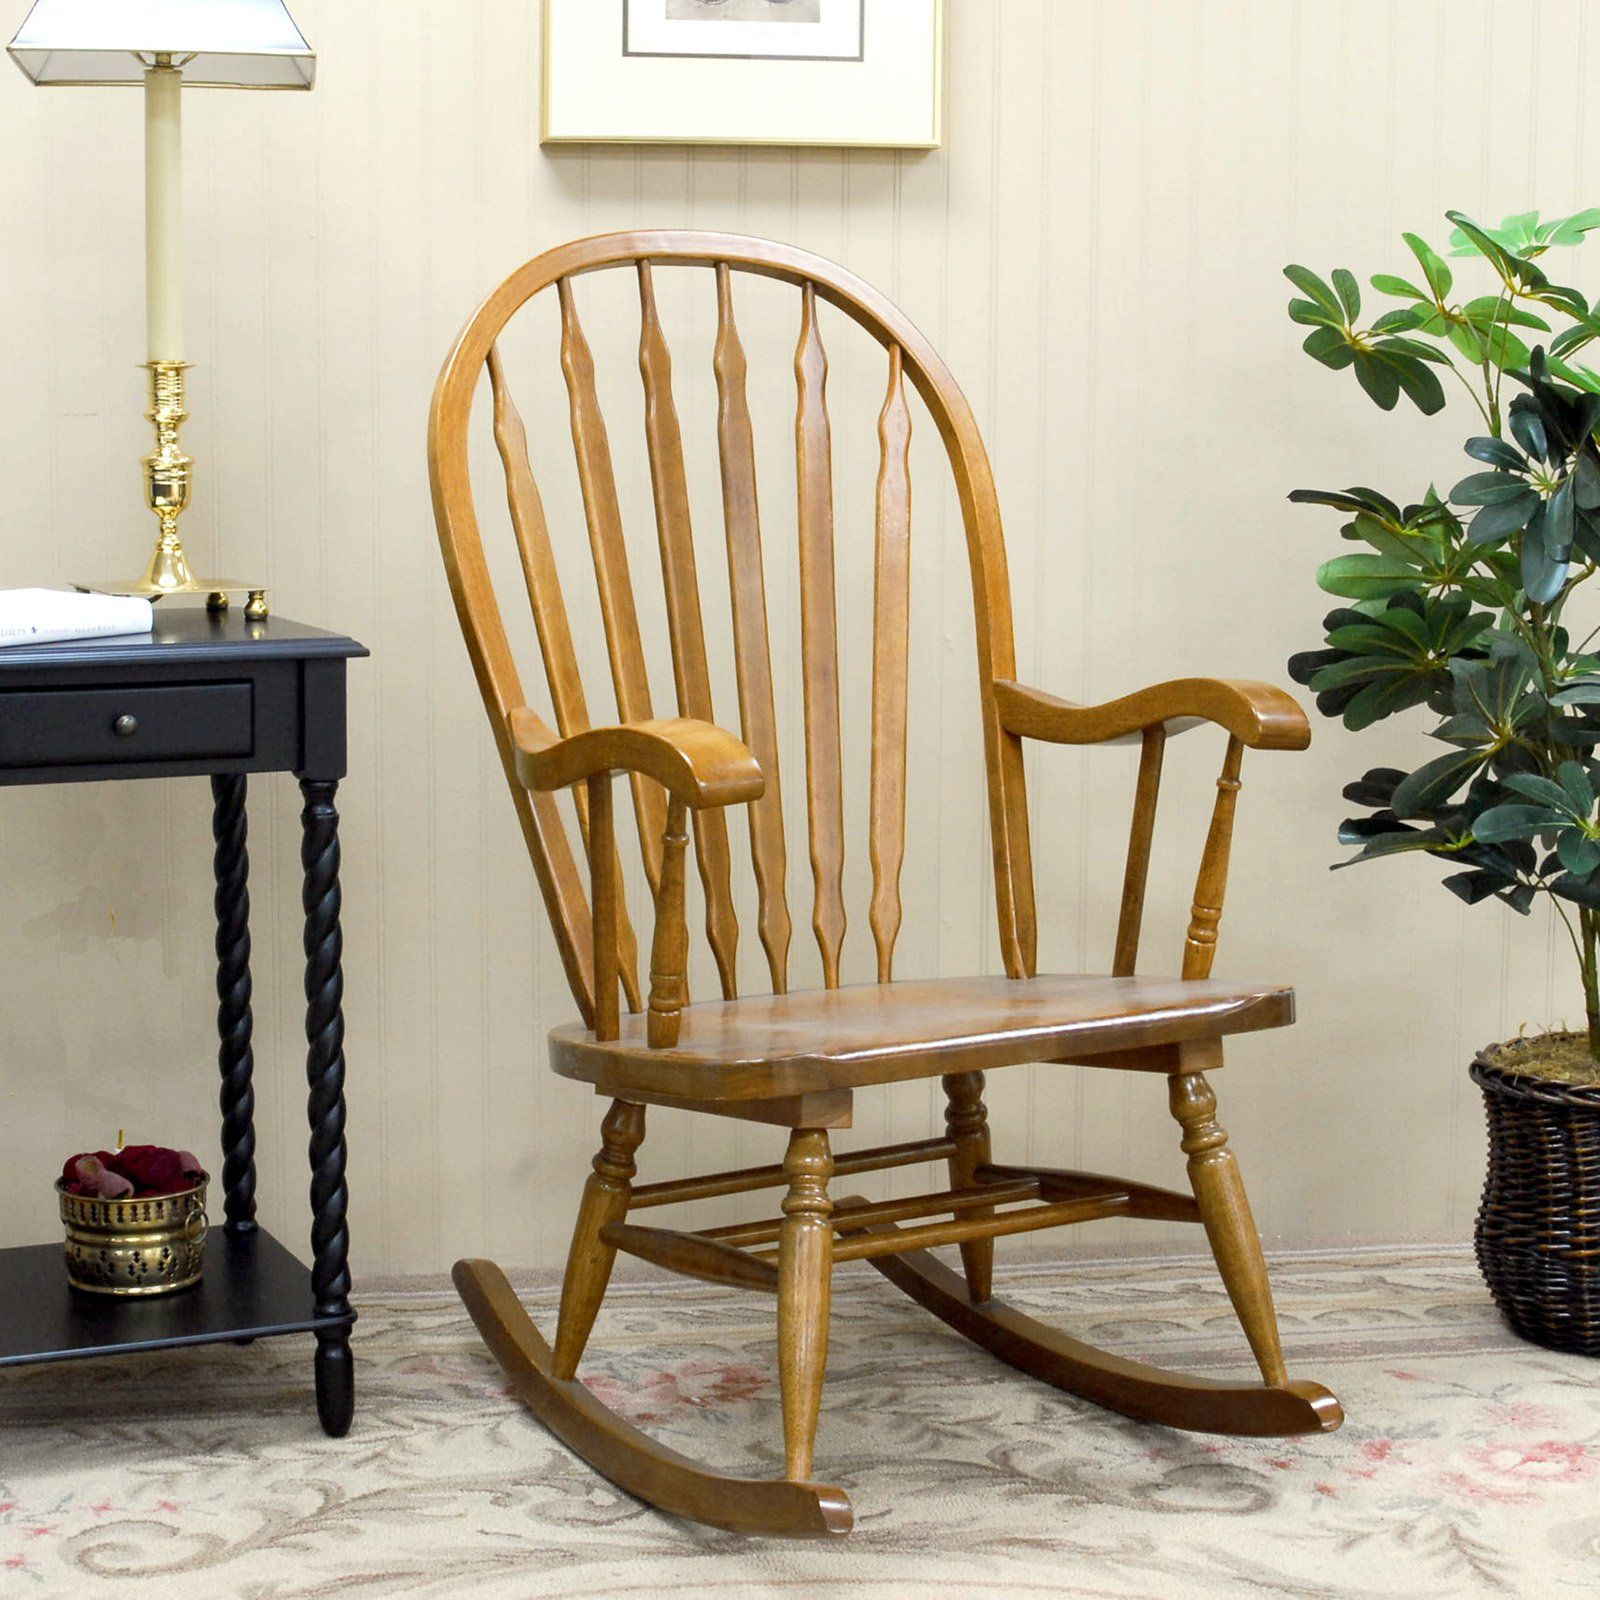 Hudson Bow Back Rocking Chair | from hayneedle.com